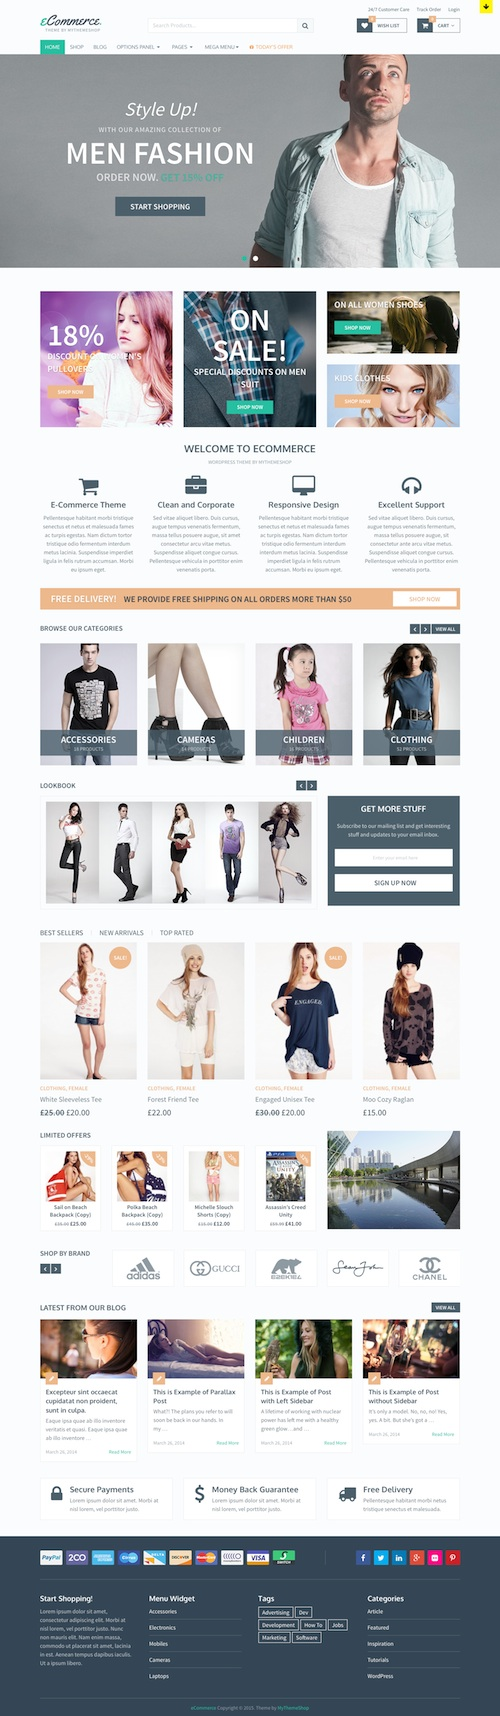 ecommerce-mythemeshop